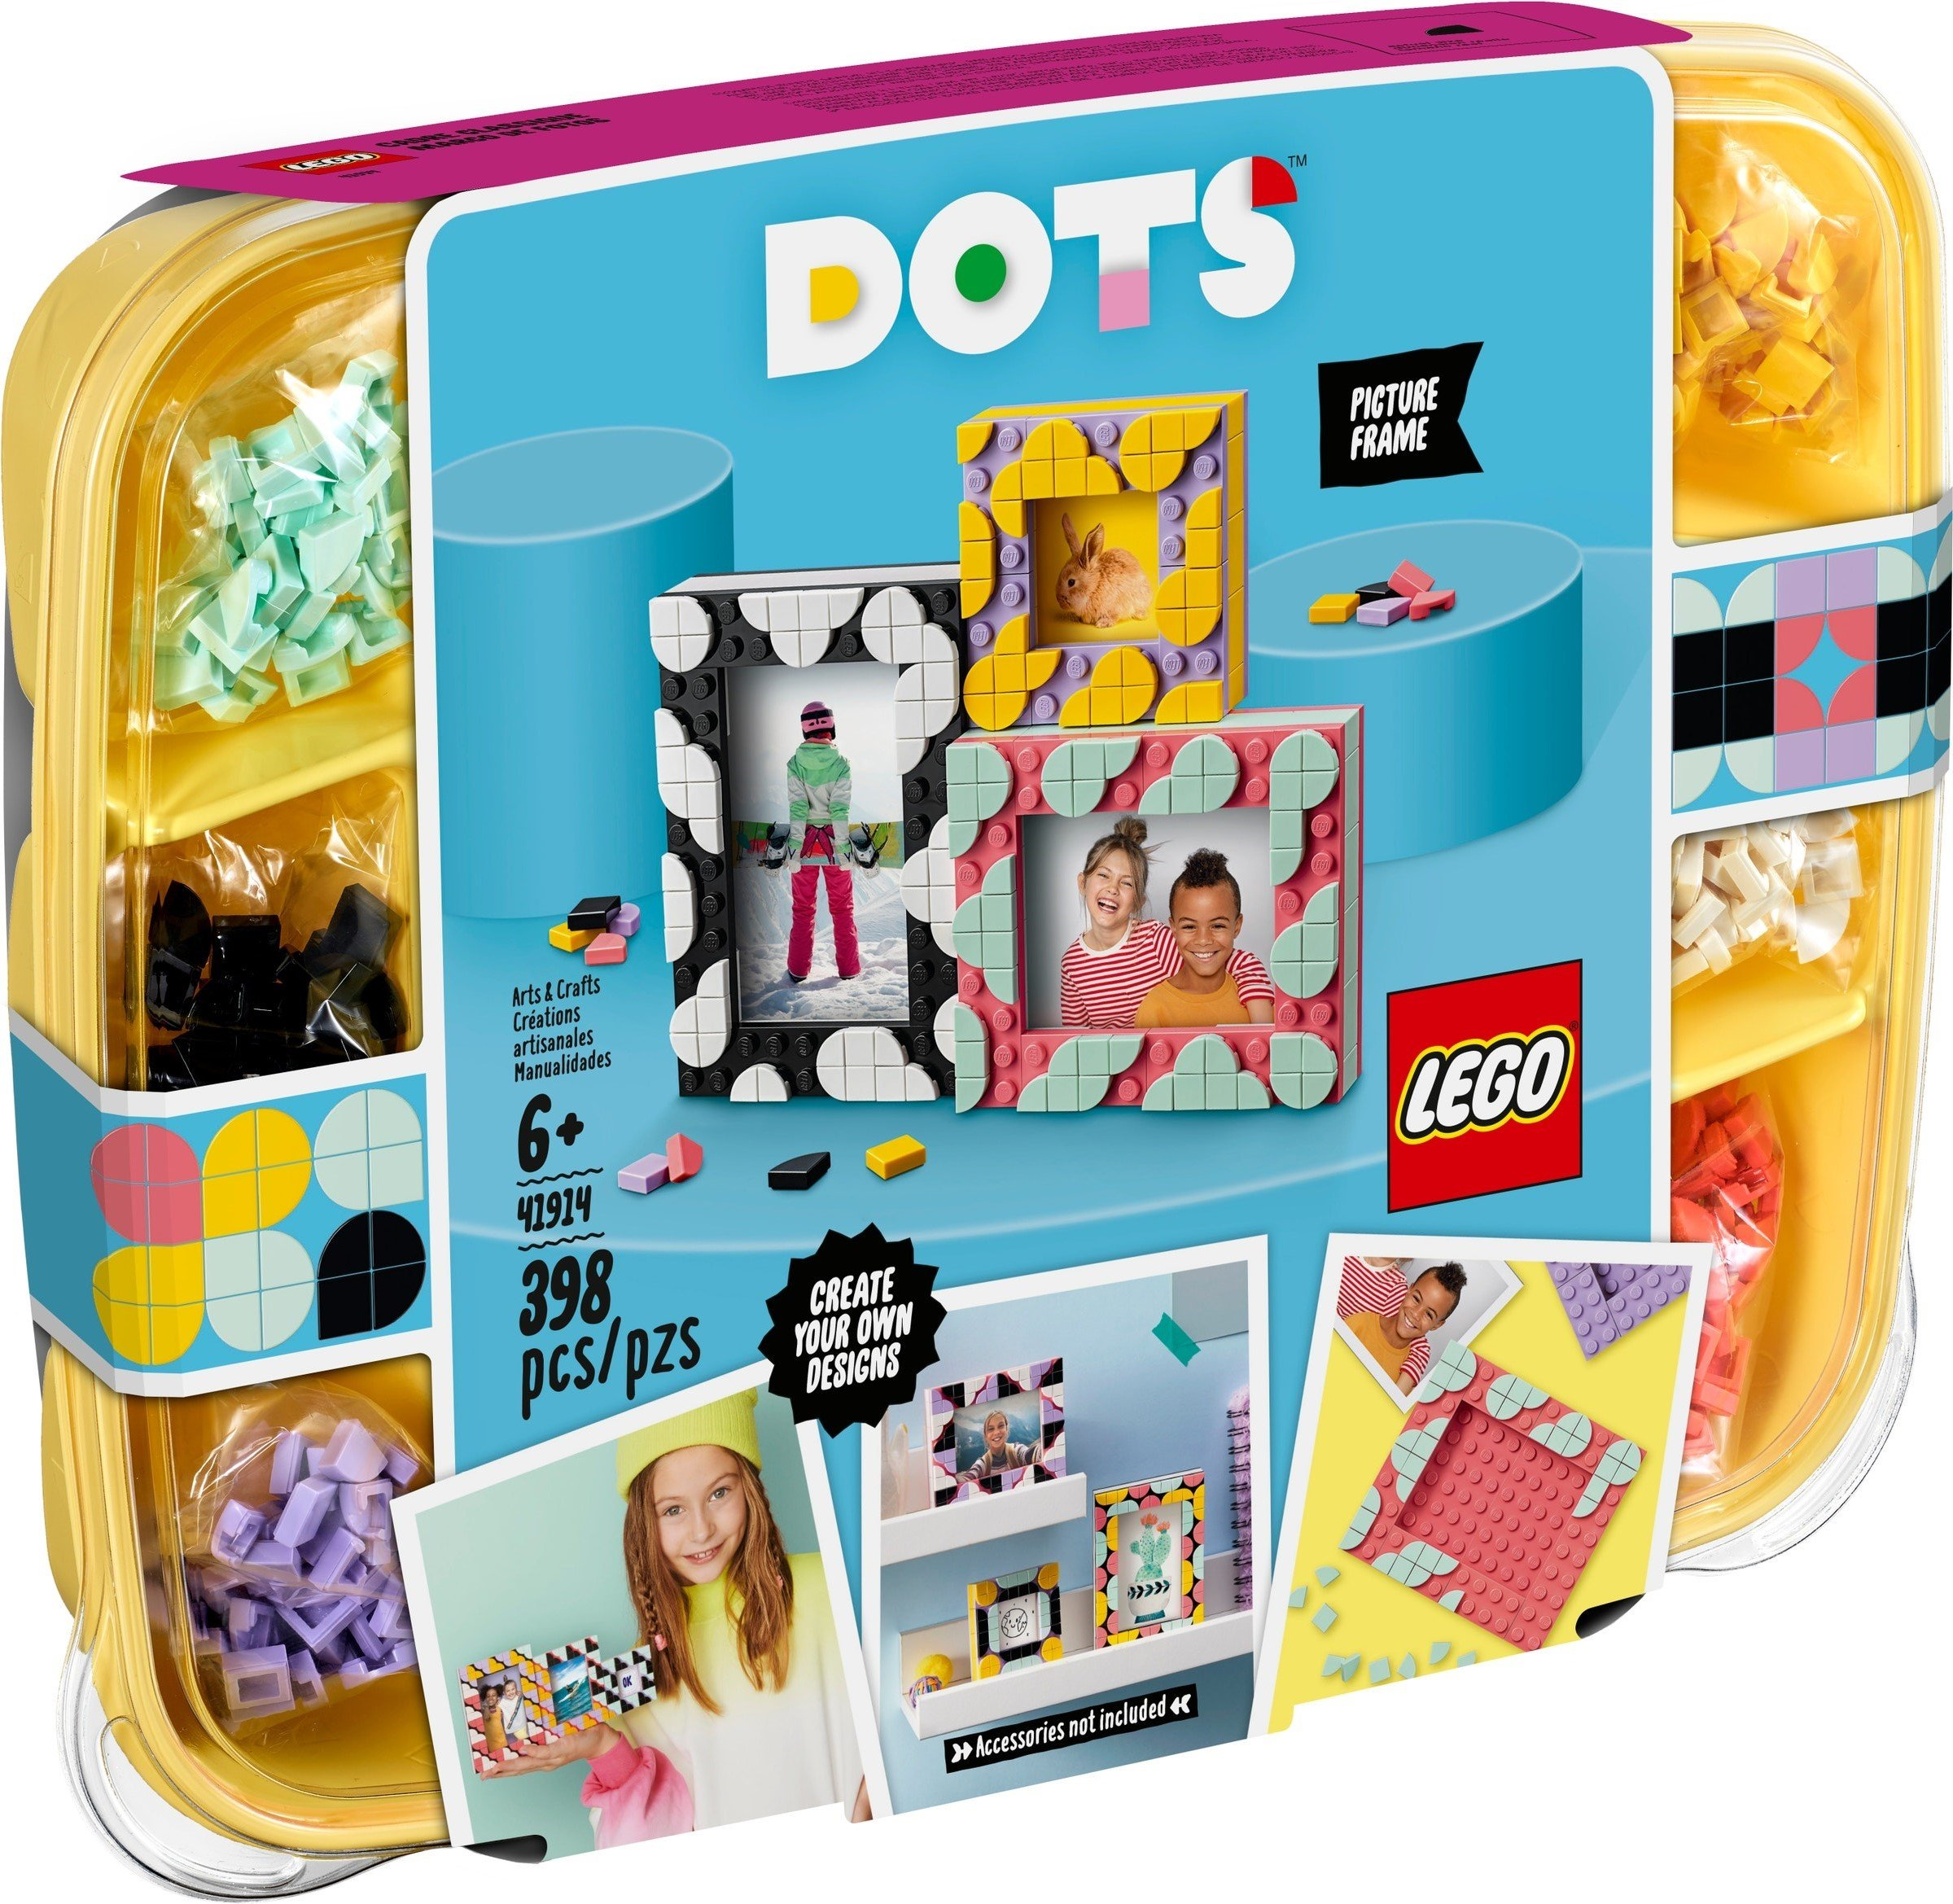 LEGO Dots - Creative Picture Frames (41914)